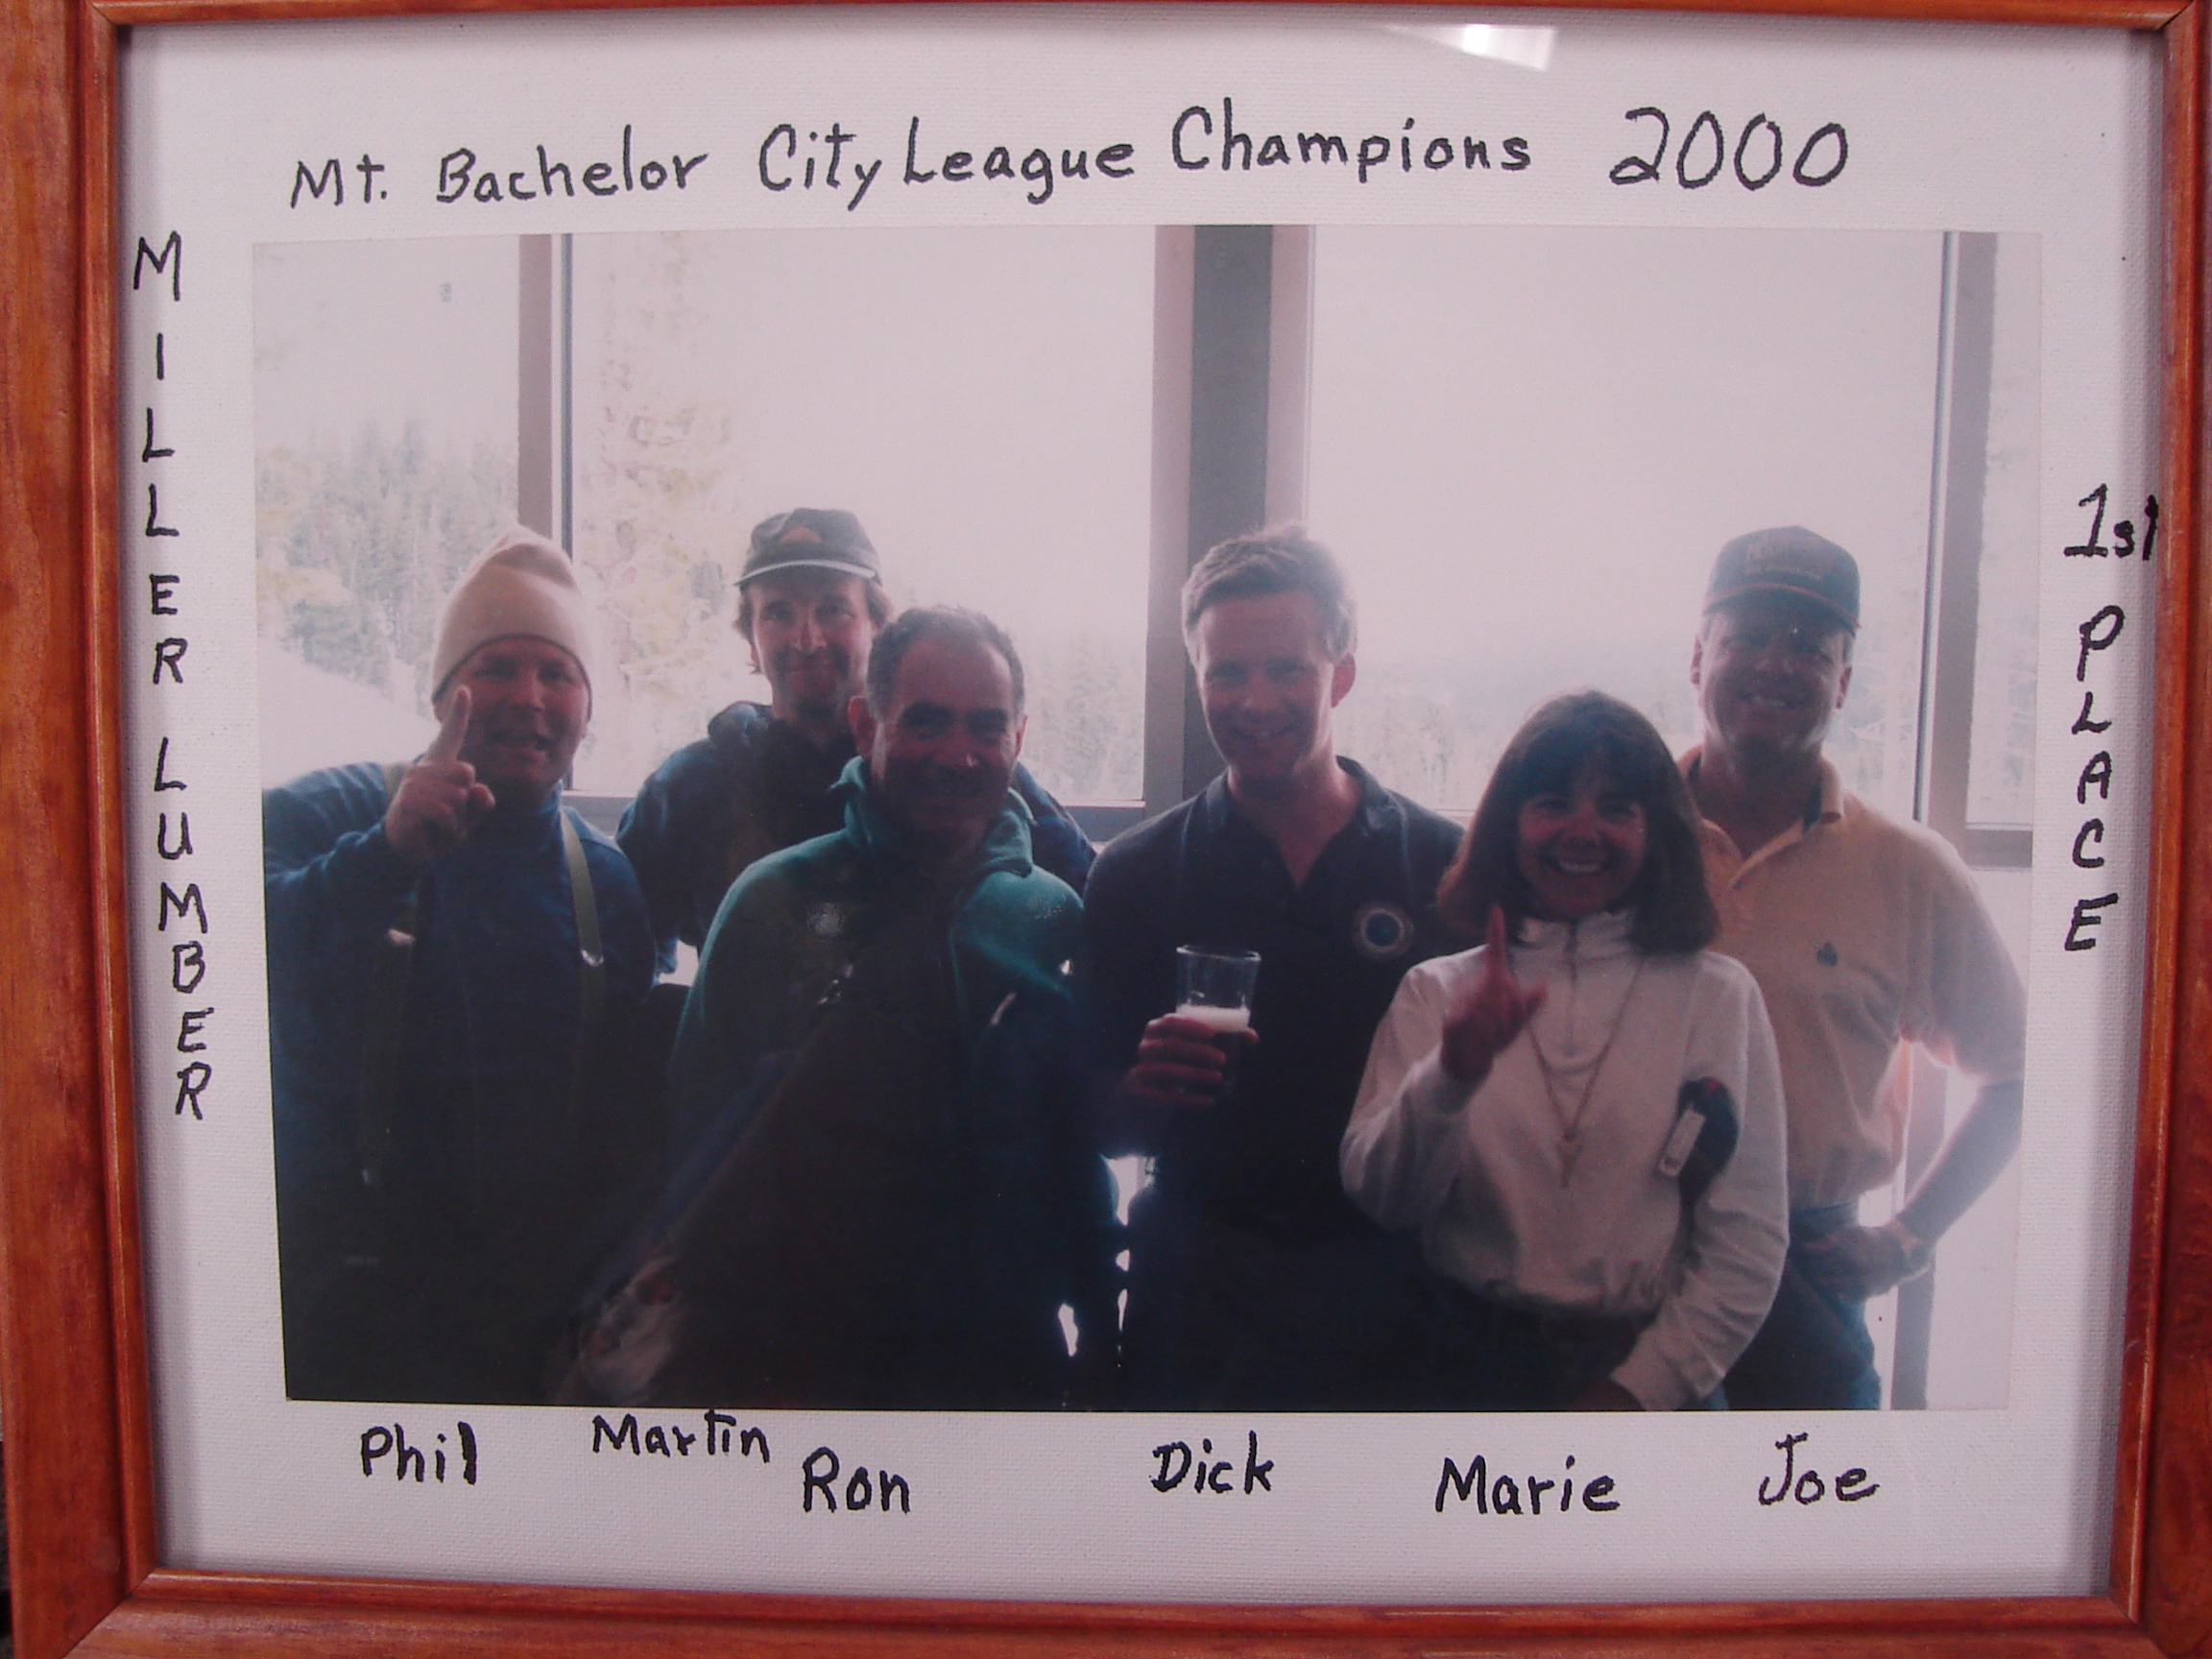 Every winter, Miller Lumber sponsors a Mt. Bachelor City League ski-racing team. In 2000, their team won first place.